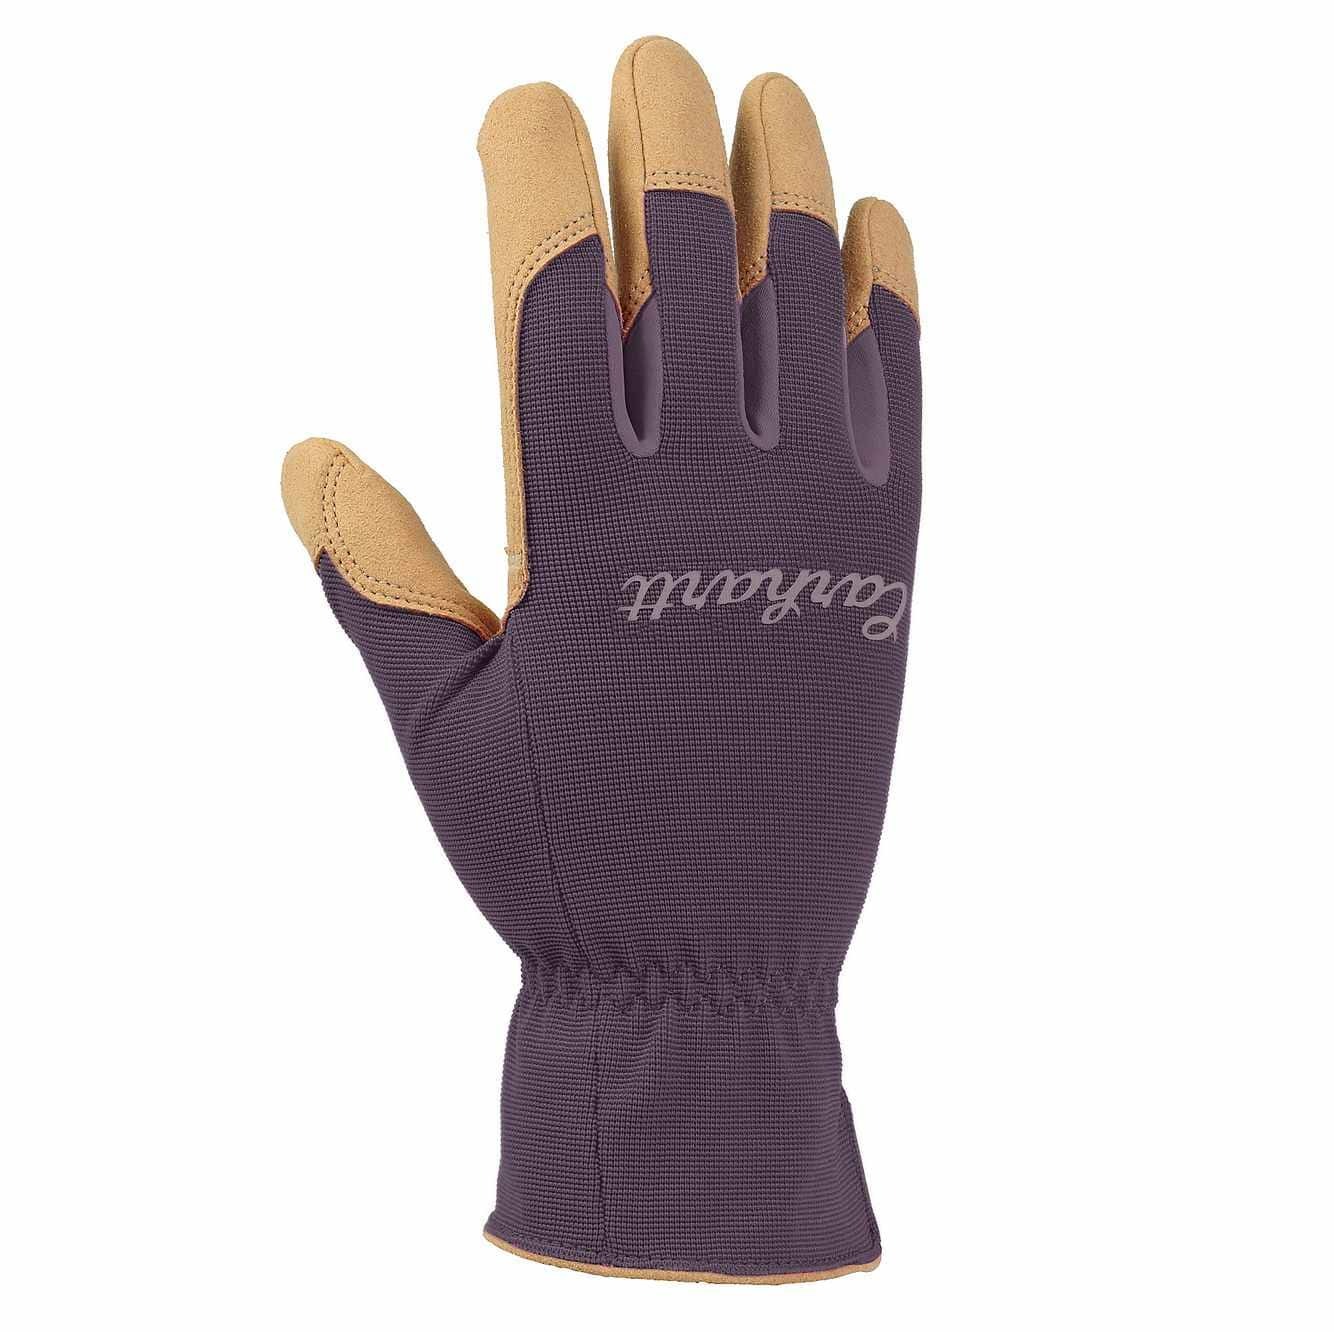 Picture of Perennial Work Glove in Dusty Plum